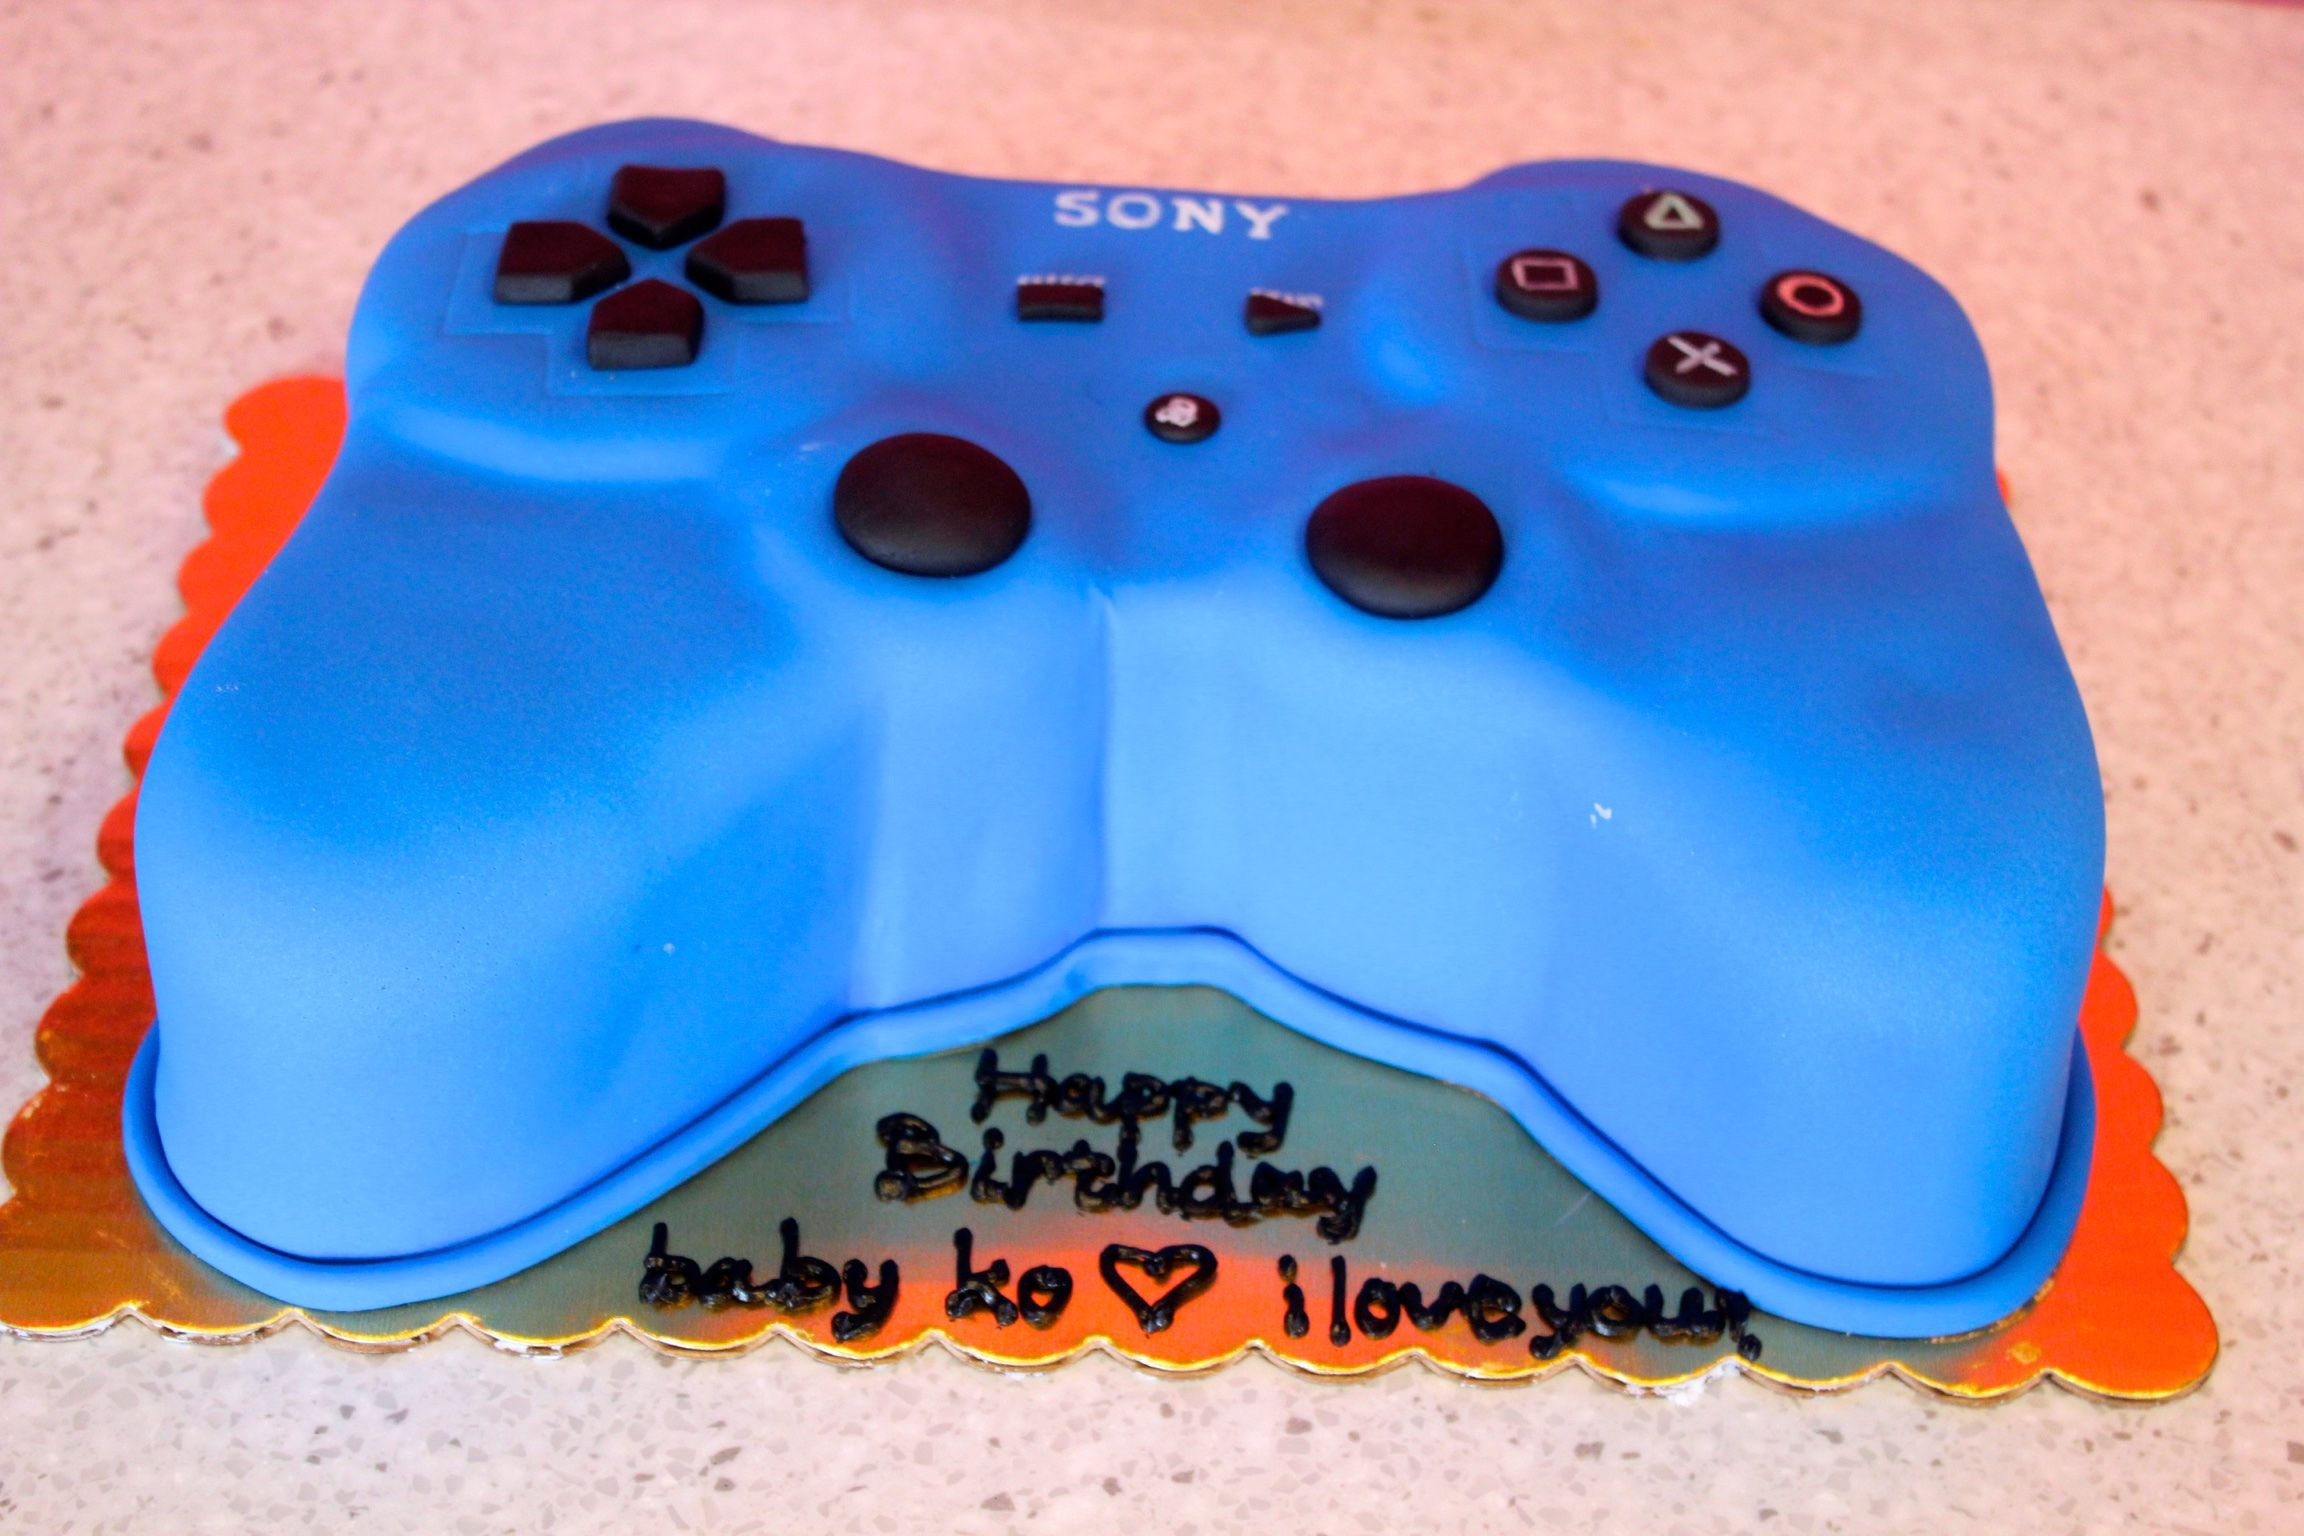 Sony PlayStation Birthday Cake PS4 Controller